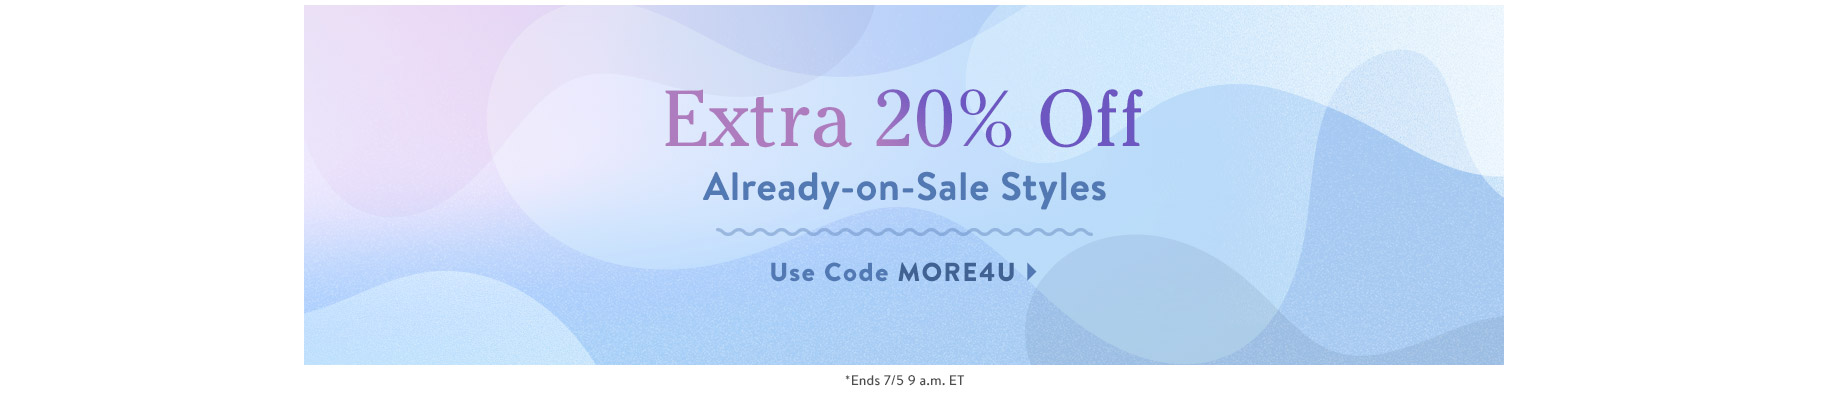 Extra 20% Off Already-on-Sale Styles. Use Code MORE4U. Ends 7/5 9 a.m. ET